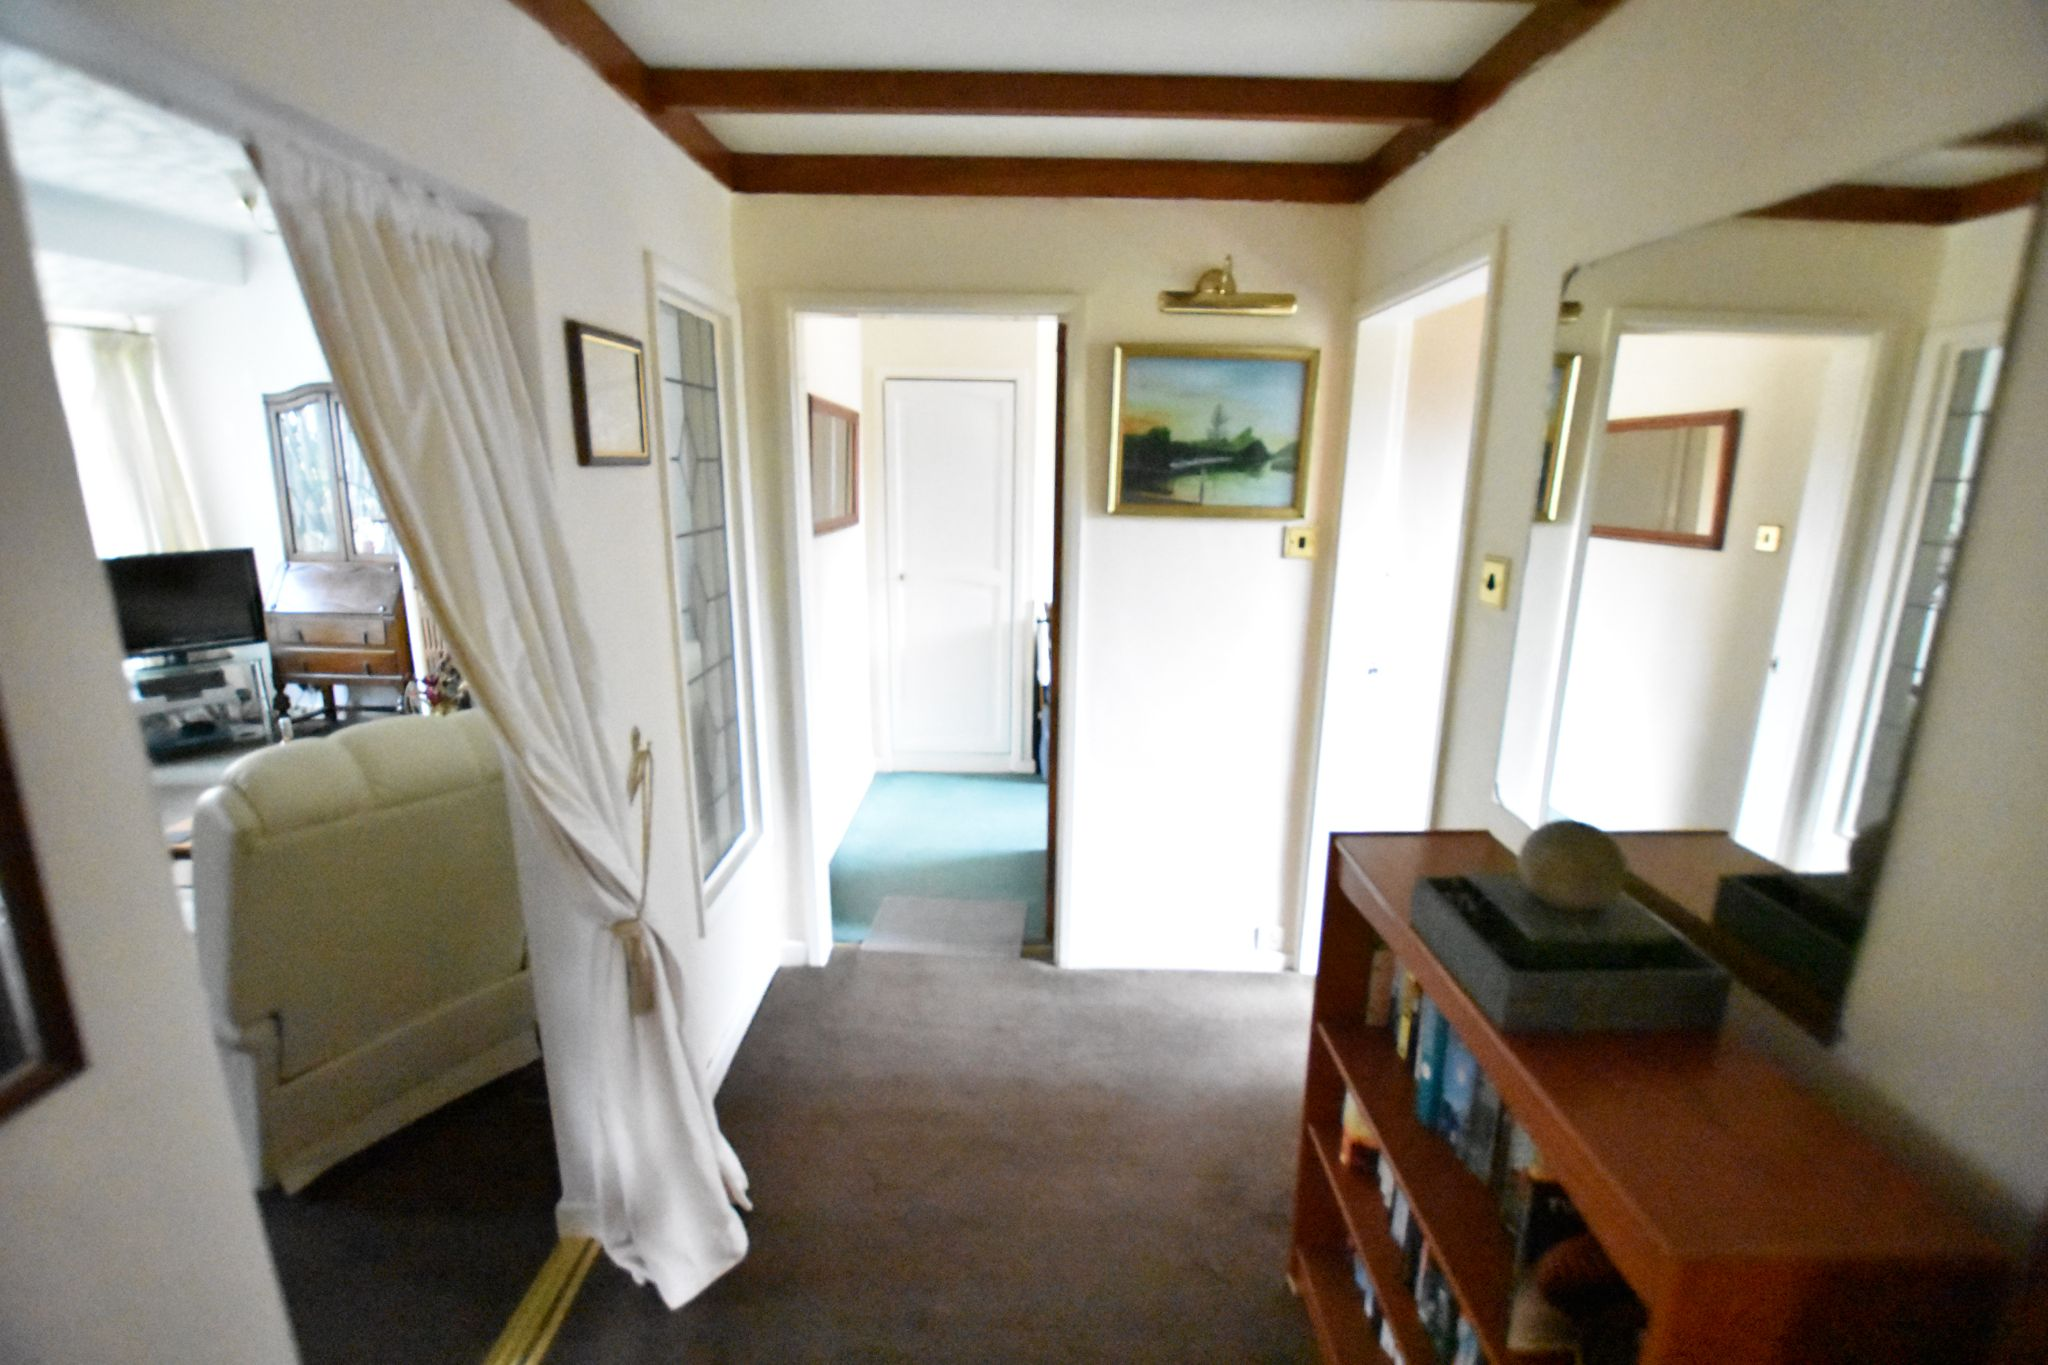 Image 2 of 2 of HALLWAY, on Accommodation Comprising for